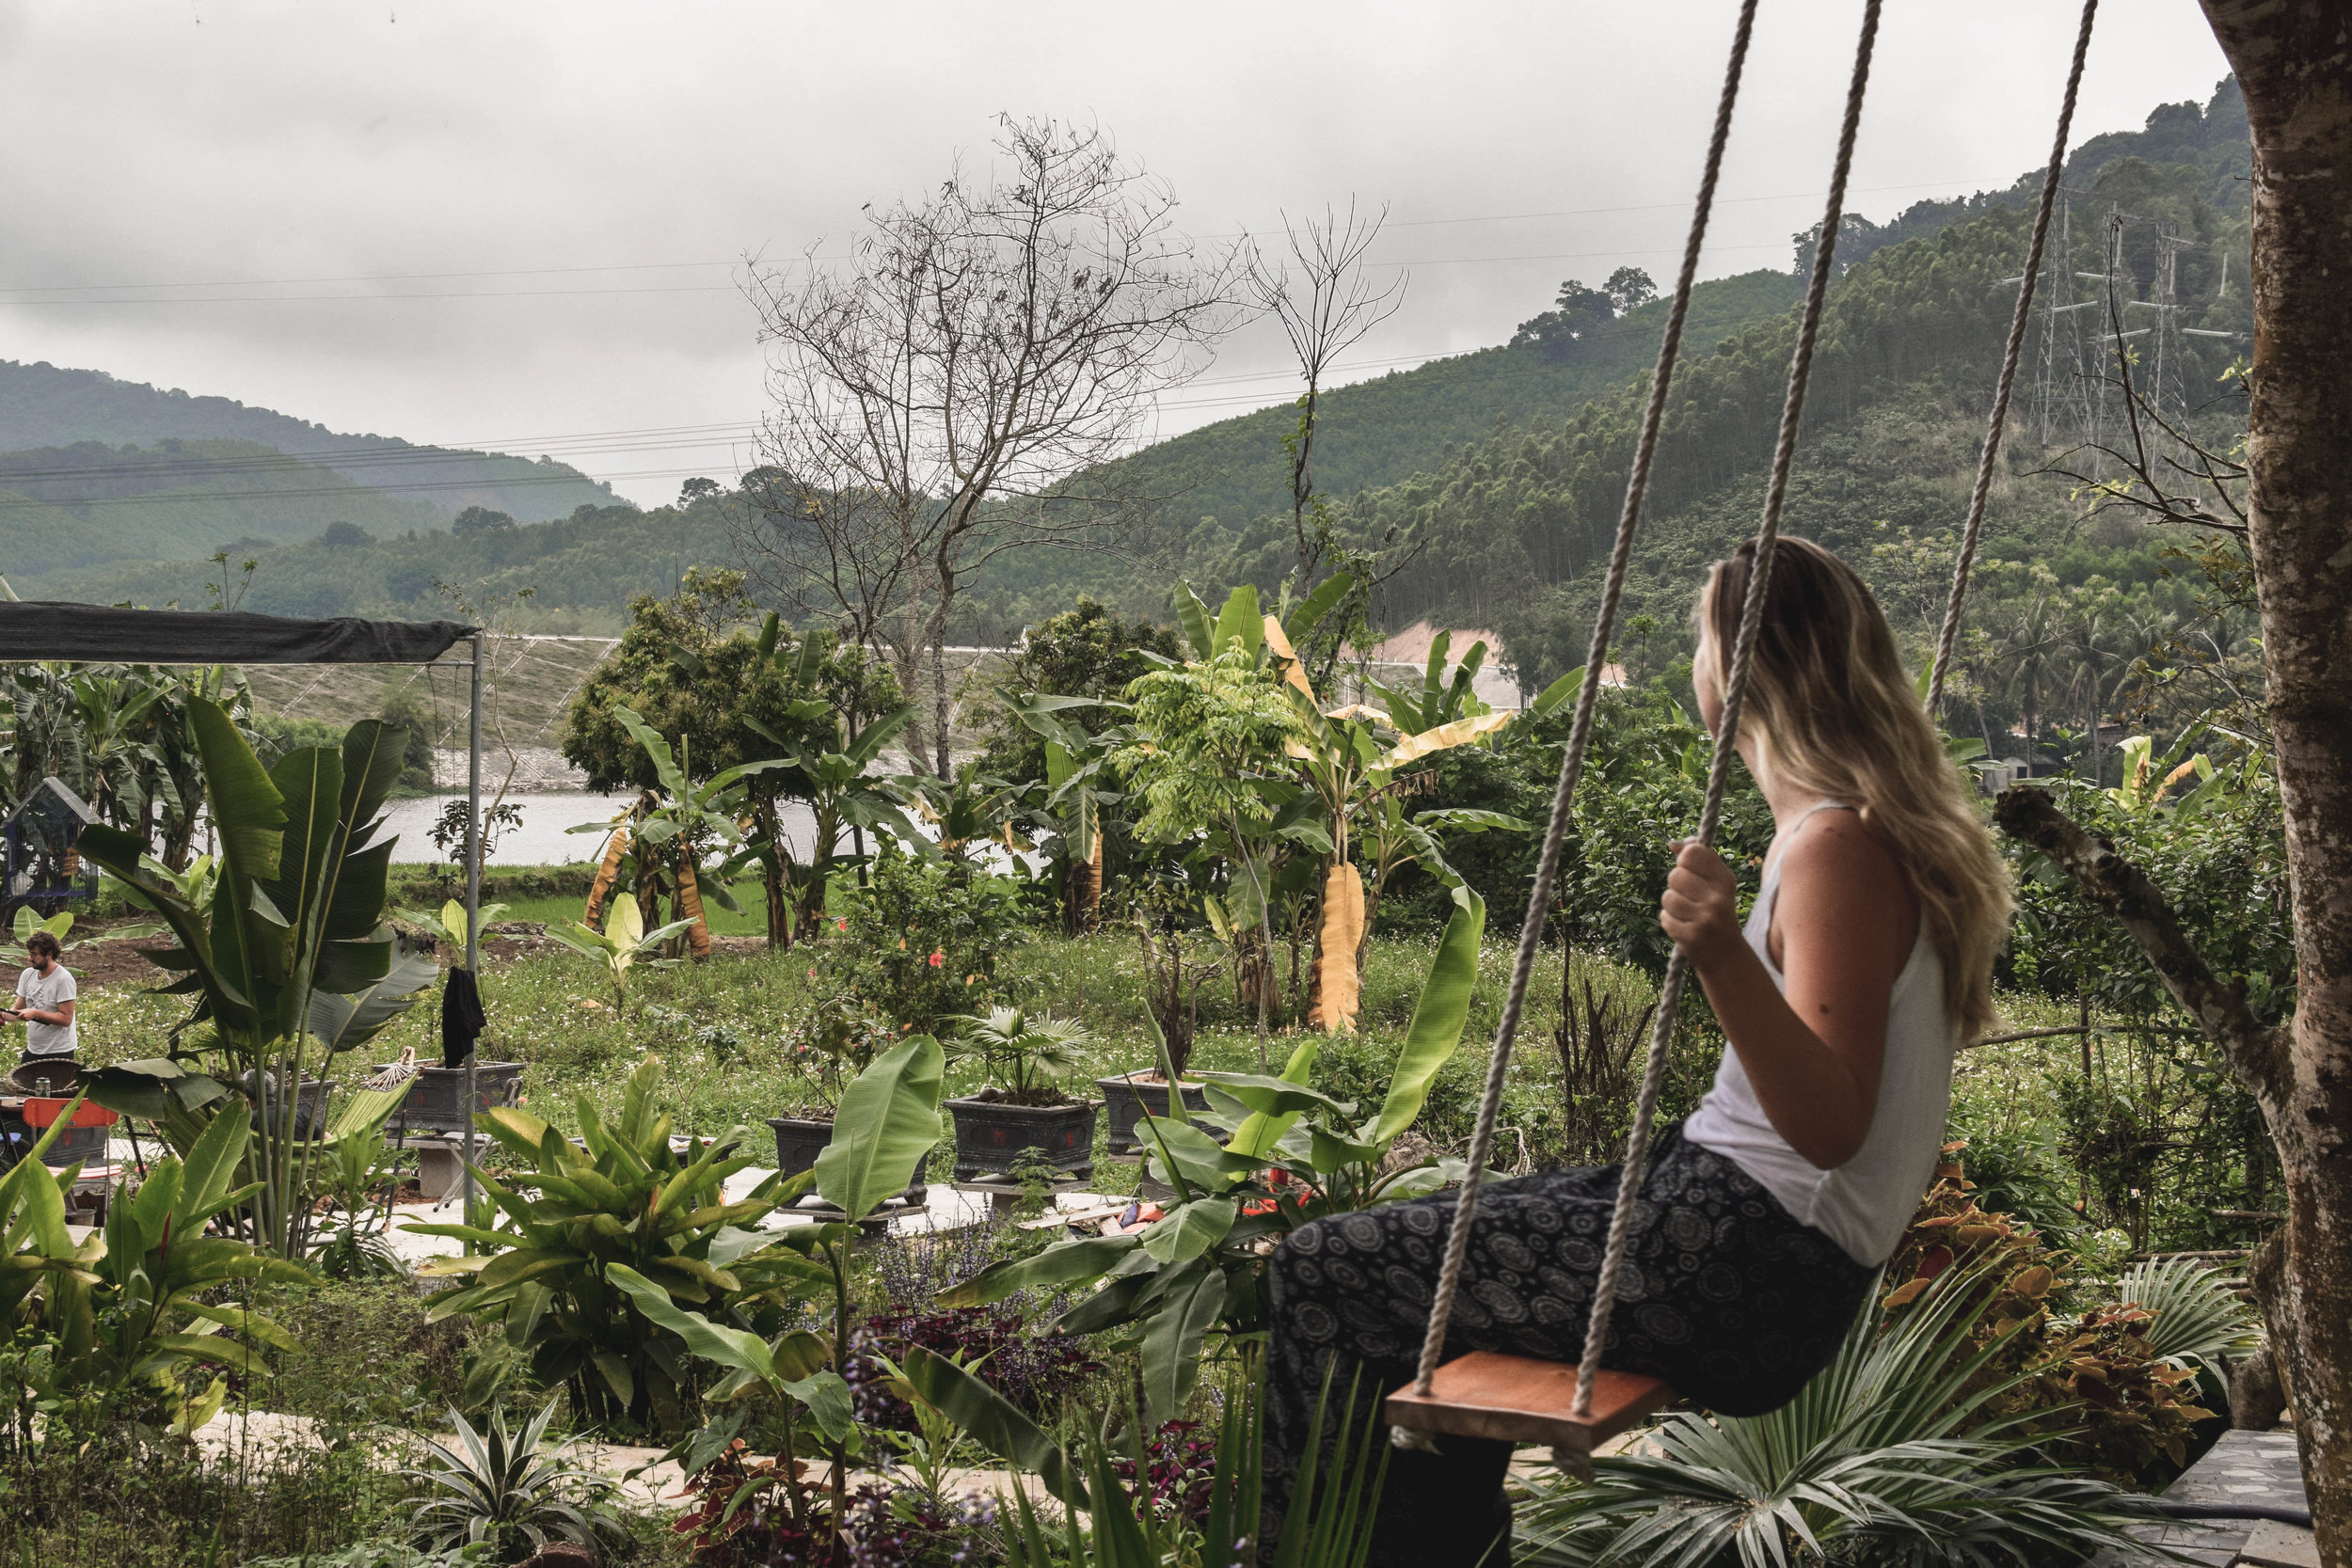 Vietnam is pretty. This is an Airbnb farmstay in rural Nghe An province.